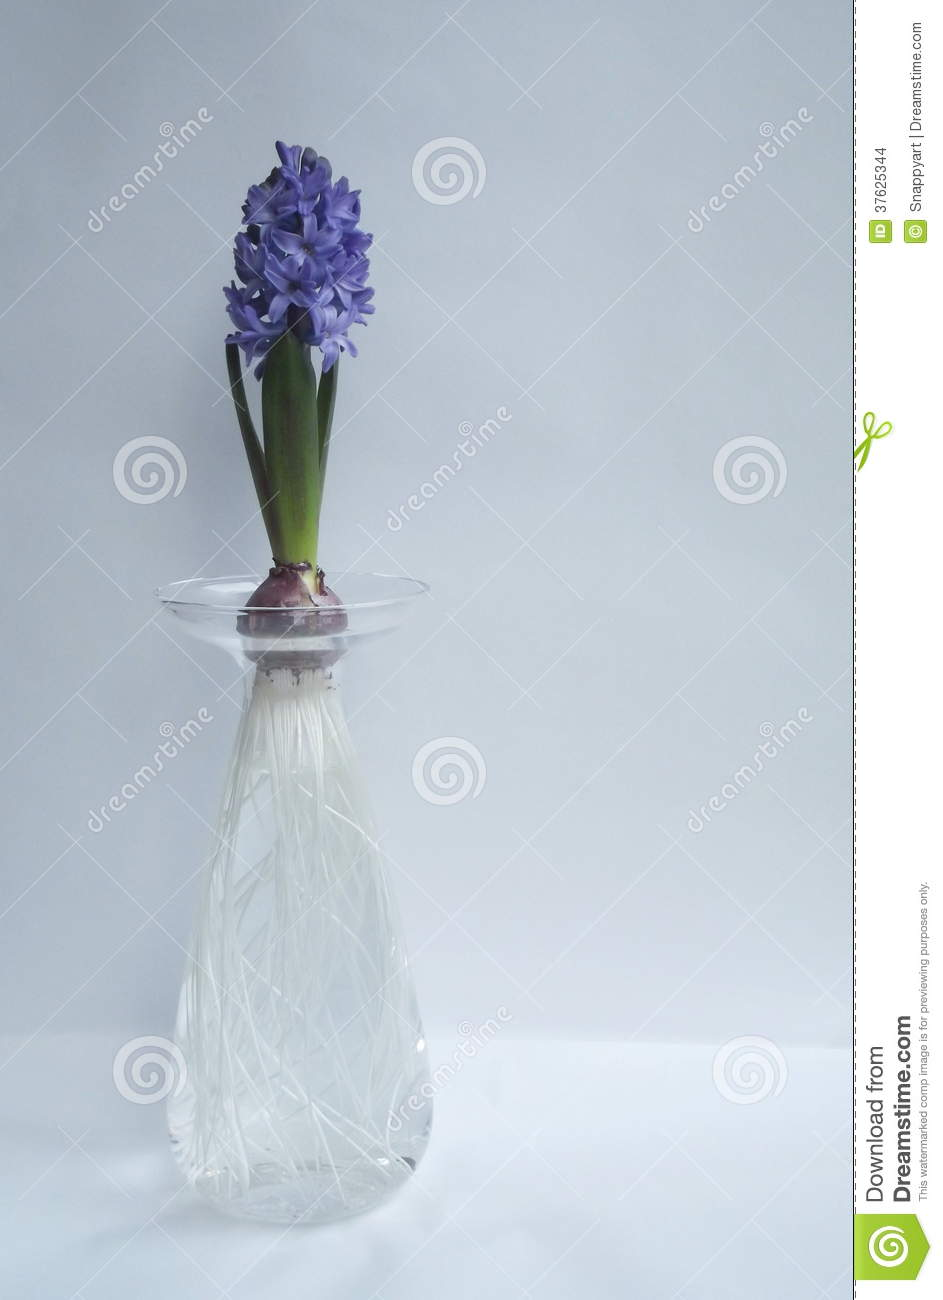 Hyacinth Blue Flower Bulb And Roots In Glass Vase Stock Images Image 37625344